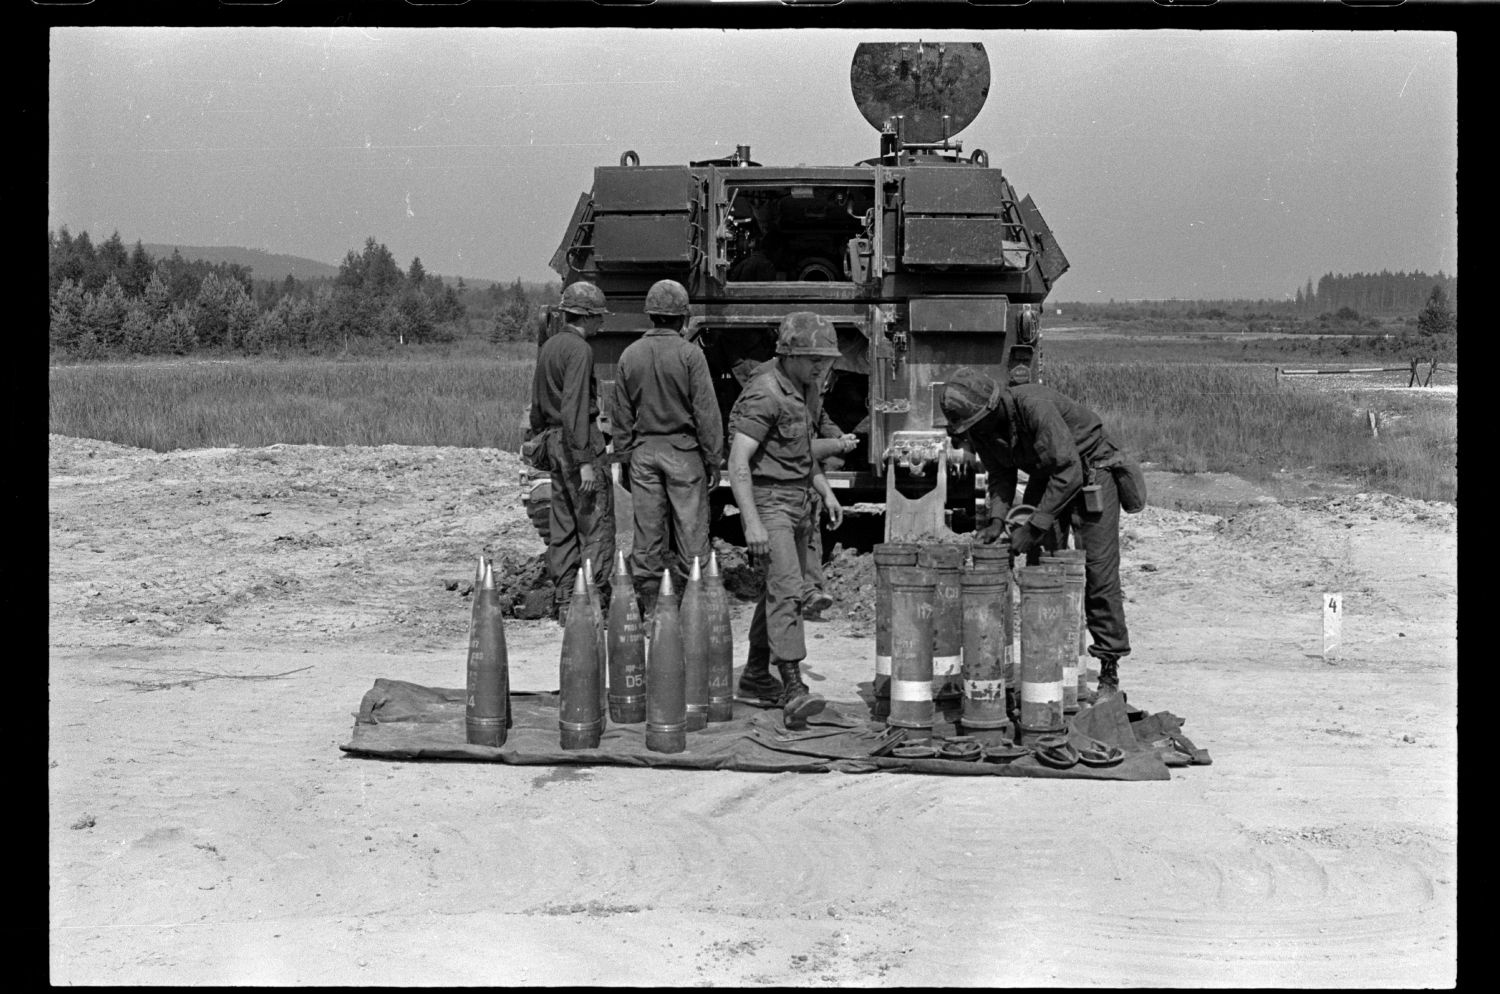 s/w-Fotografie: Übung der C Battery, 94th Field Artillery auf einem Truppenübungsplatz in West-Deutschland (AlliiertenMuseum/U.S. Army Photograph Public Domain Mark)